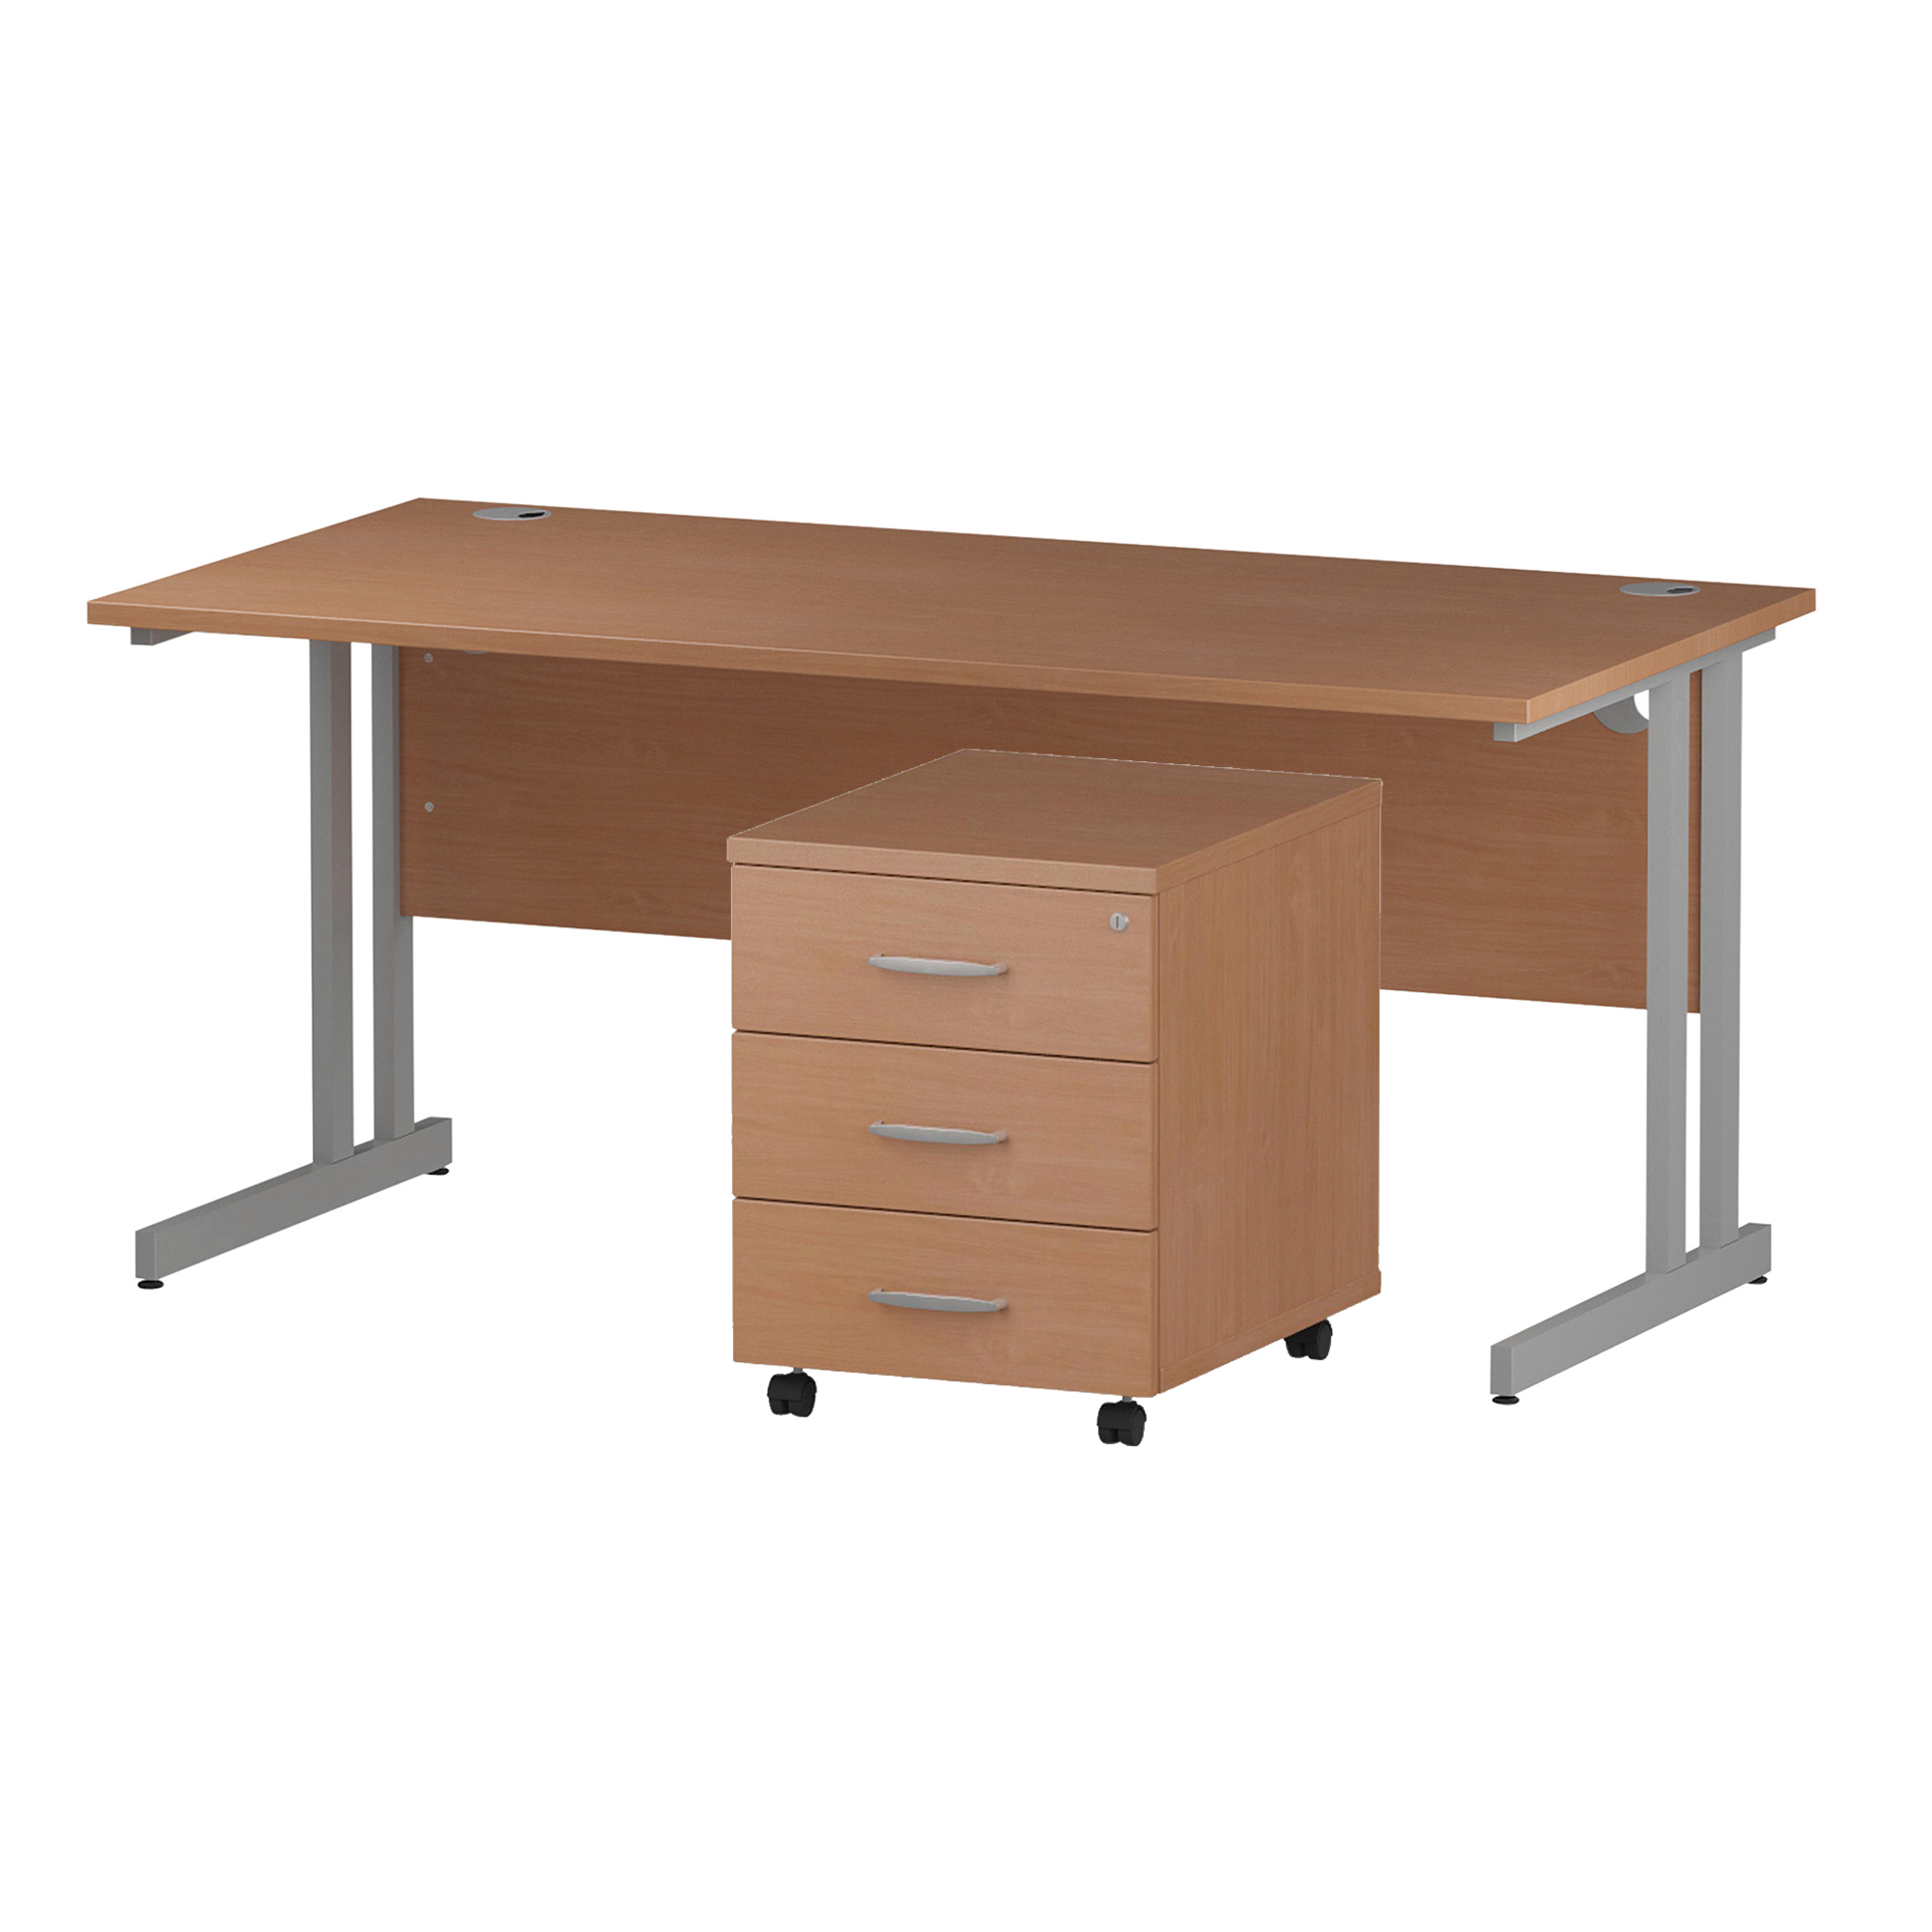 Desks Trexus Cantilever Desk 1600x800 & 3 Drawer Pedestal Beech Bundle Offer Feb-Apr 2020